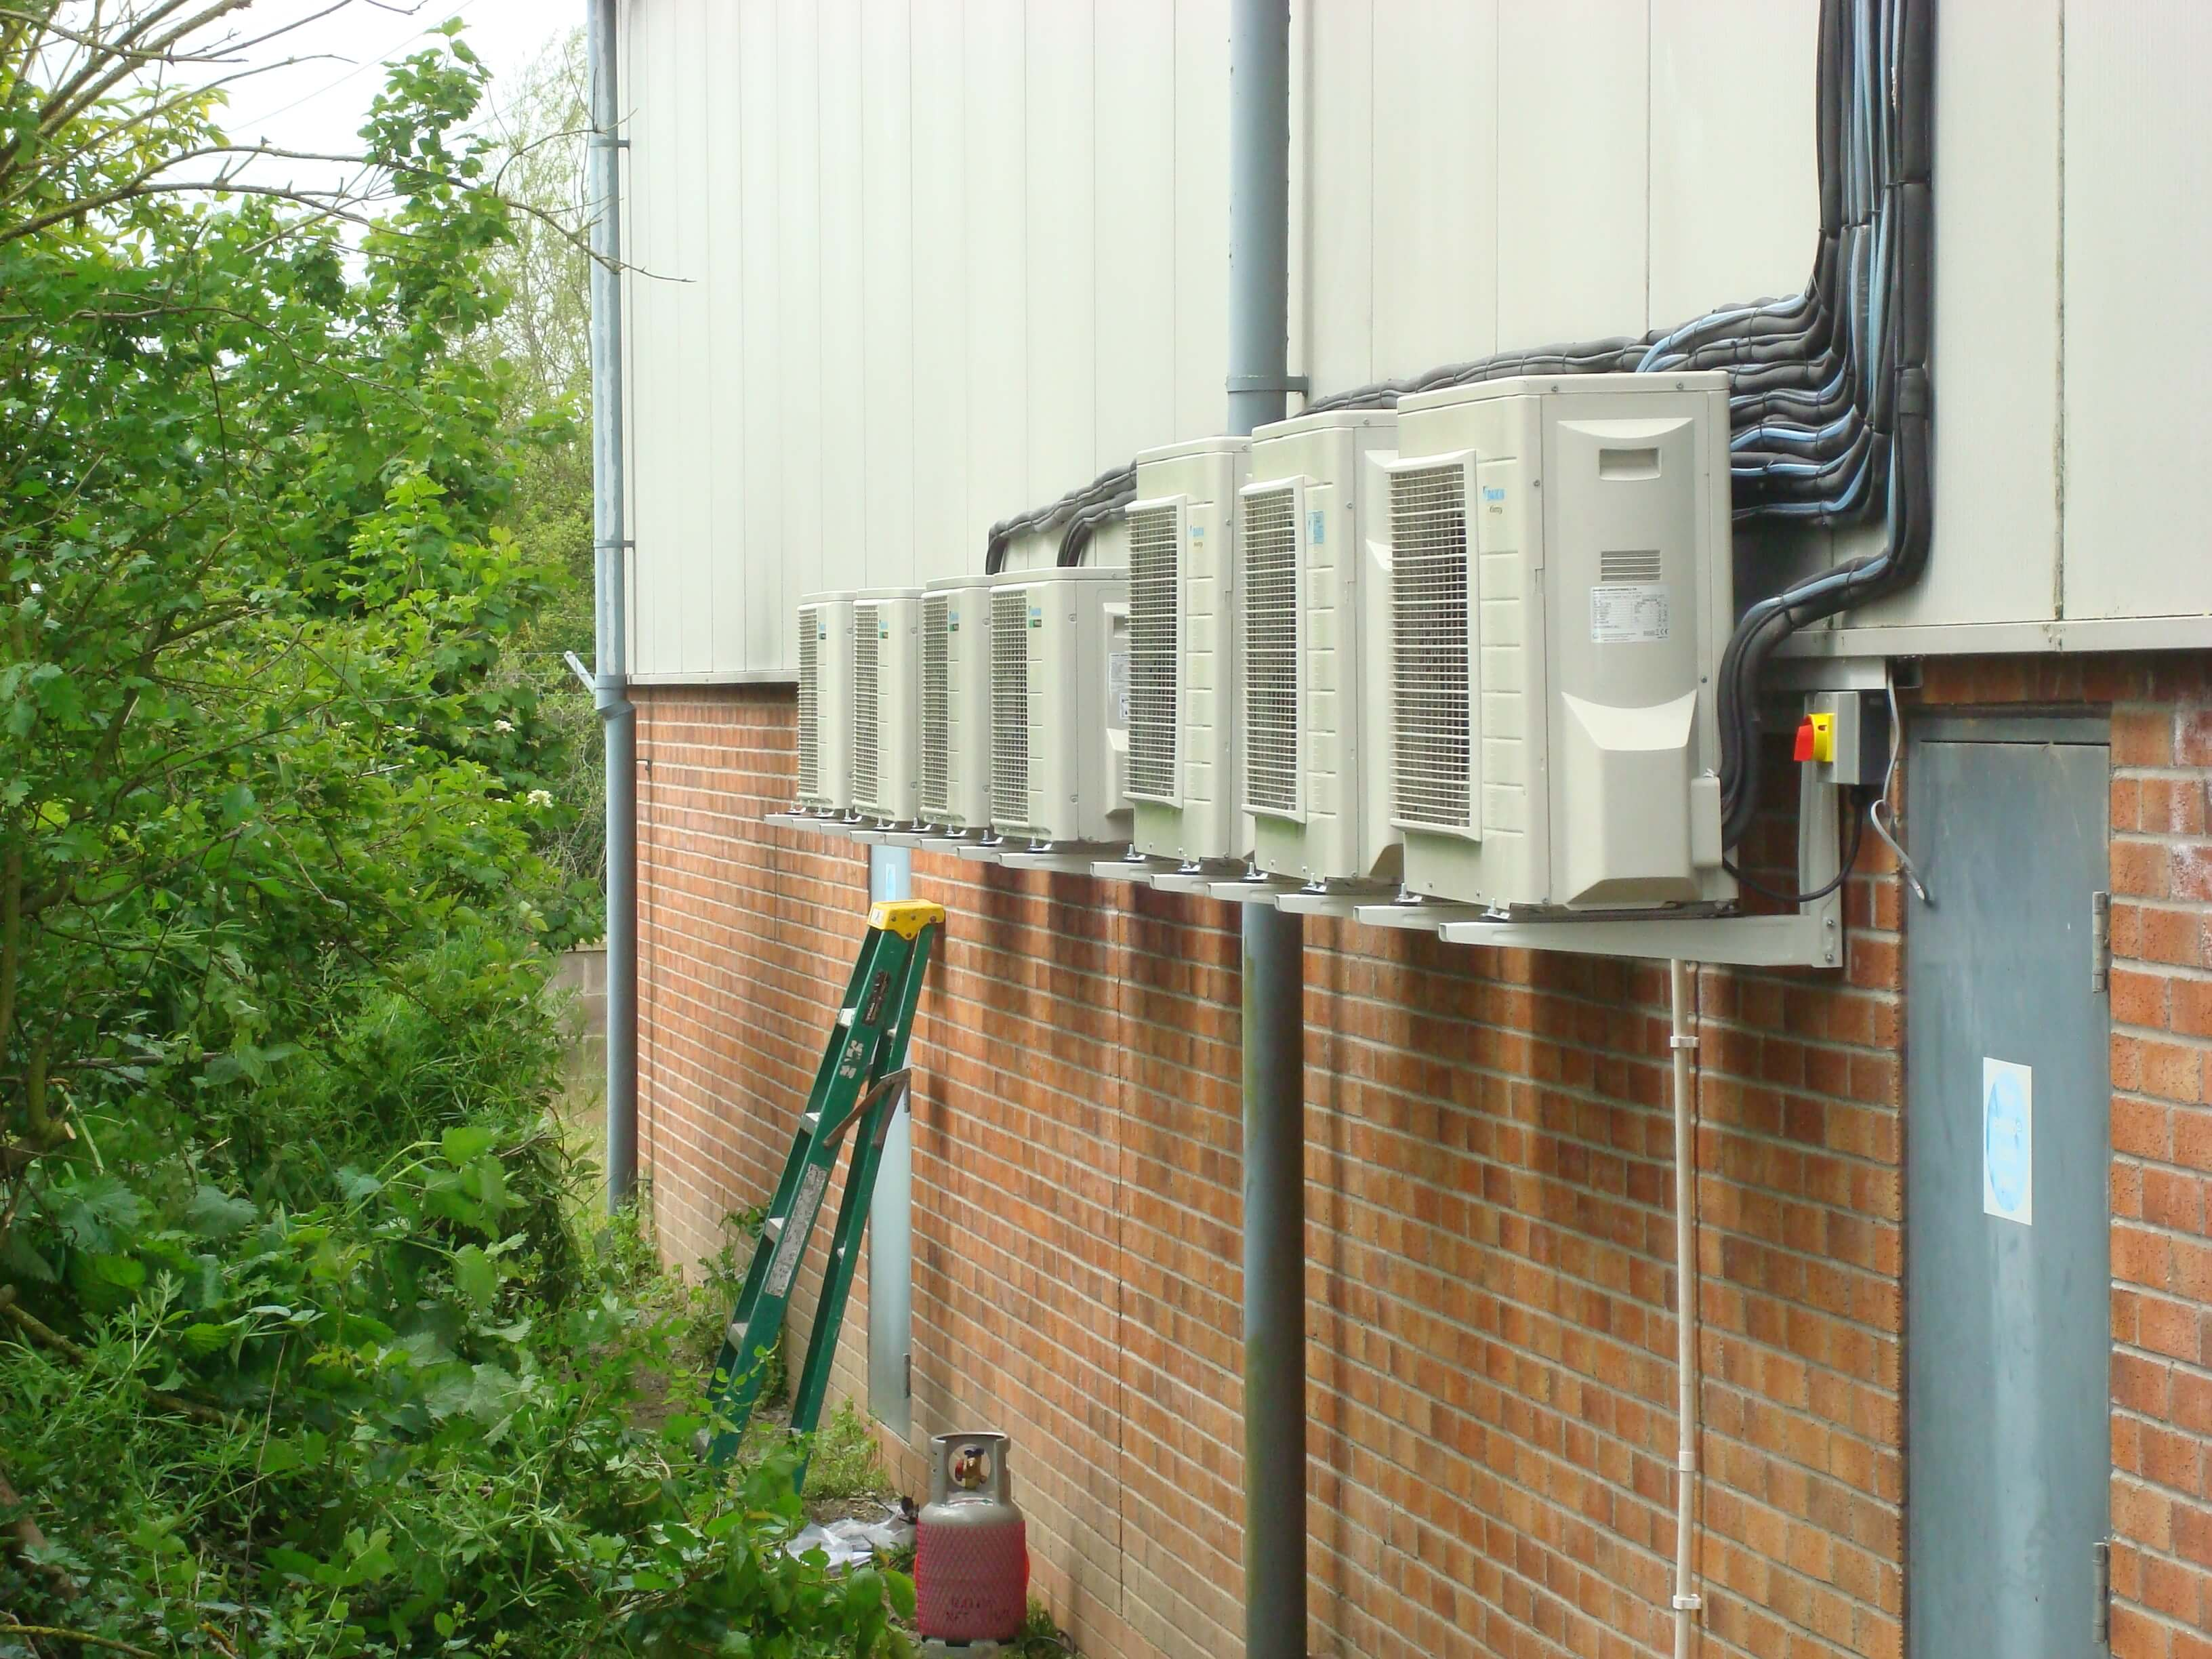 New air conditioning units outside